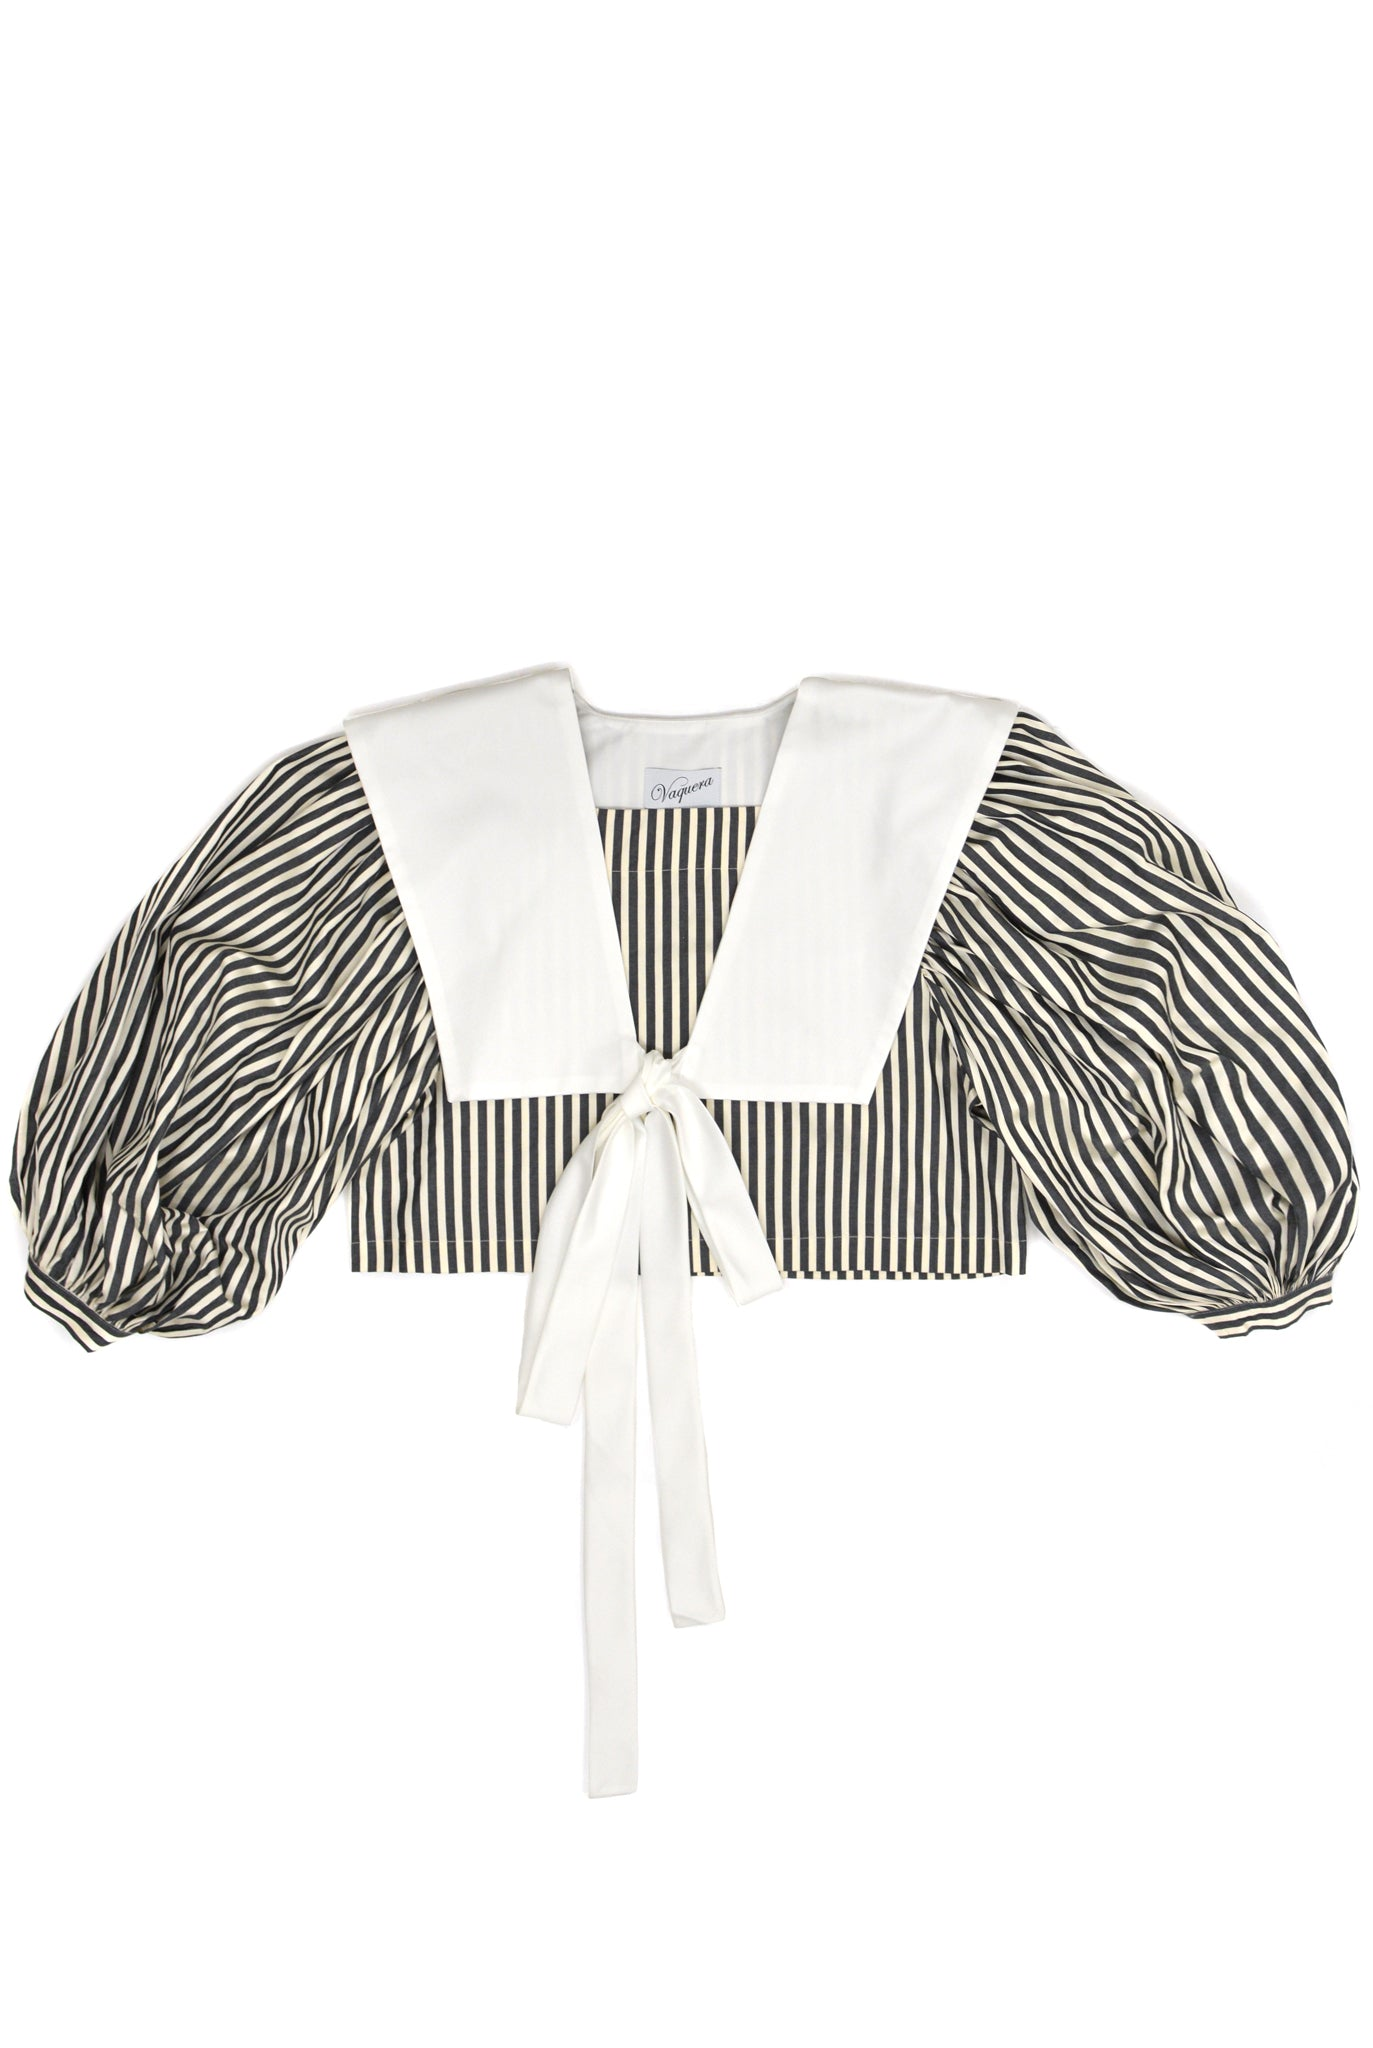 Vaquera Sailor Blouse